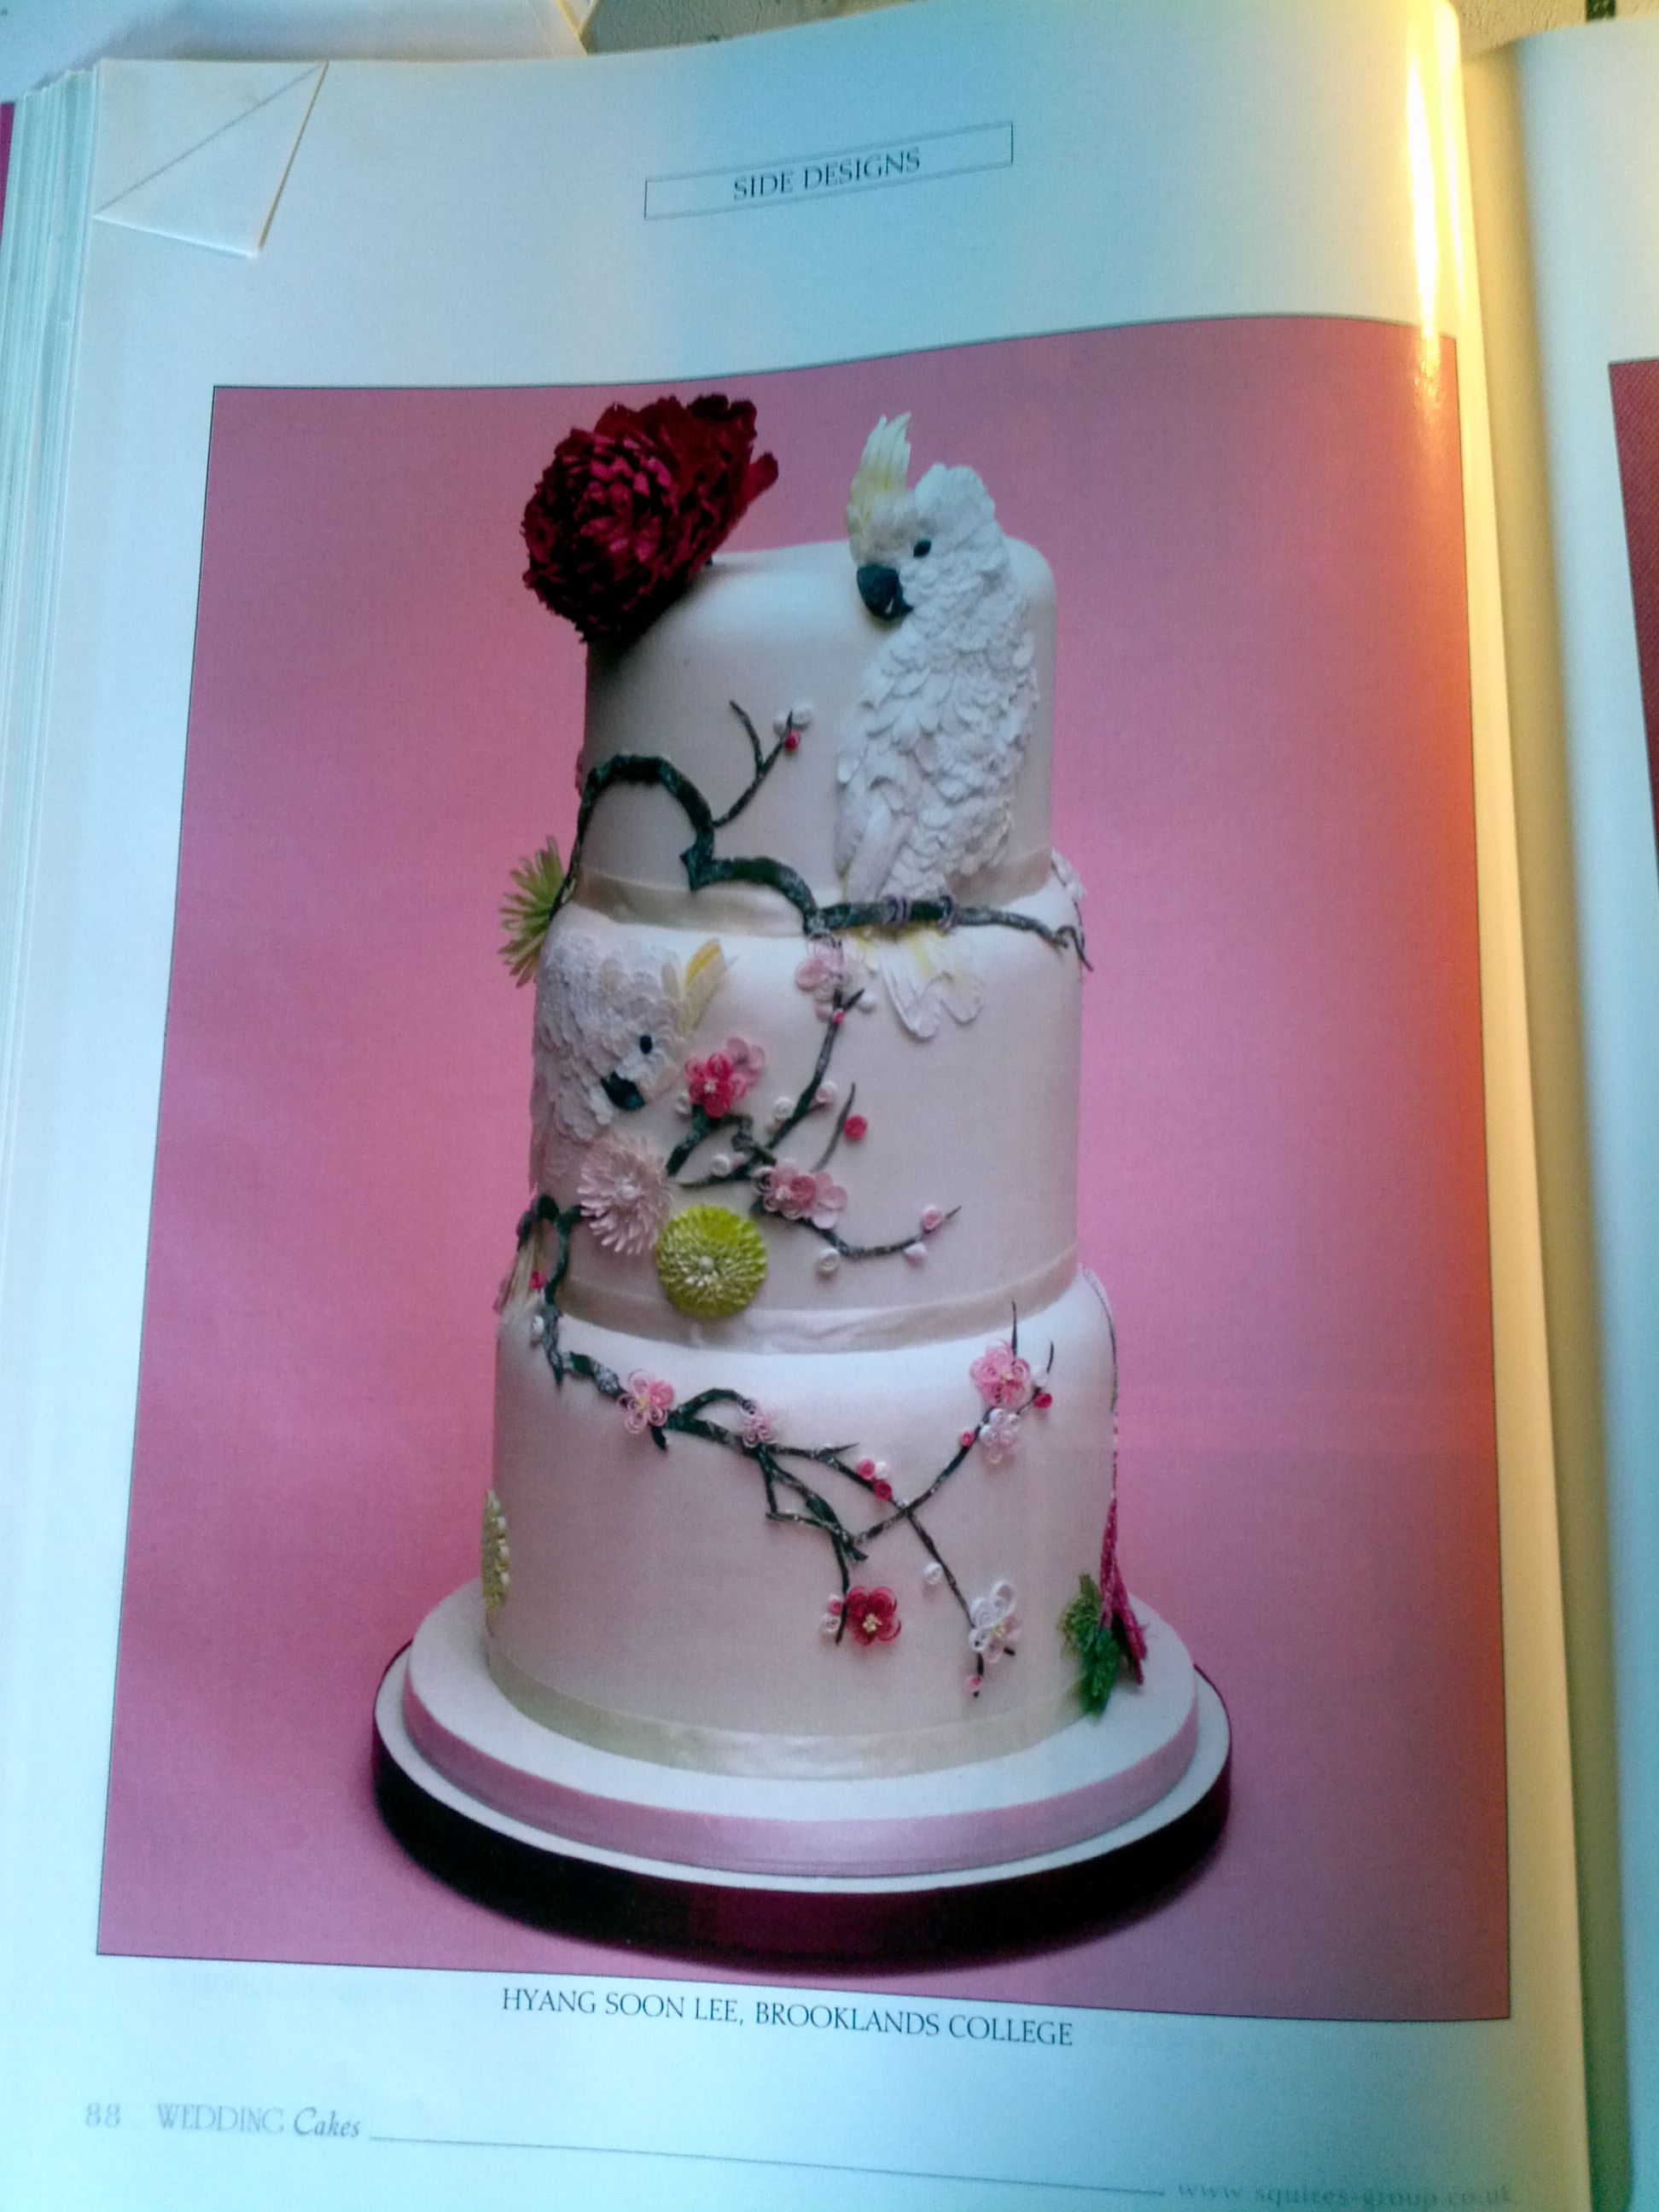 Wow amazing details from wedding cakes a design source issue pg